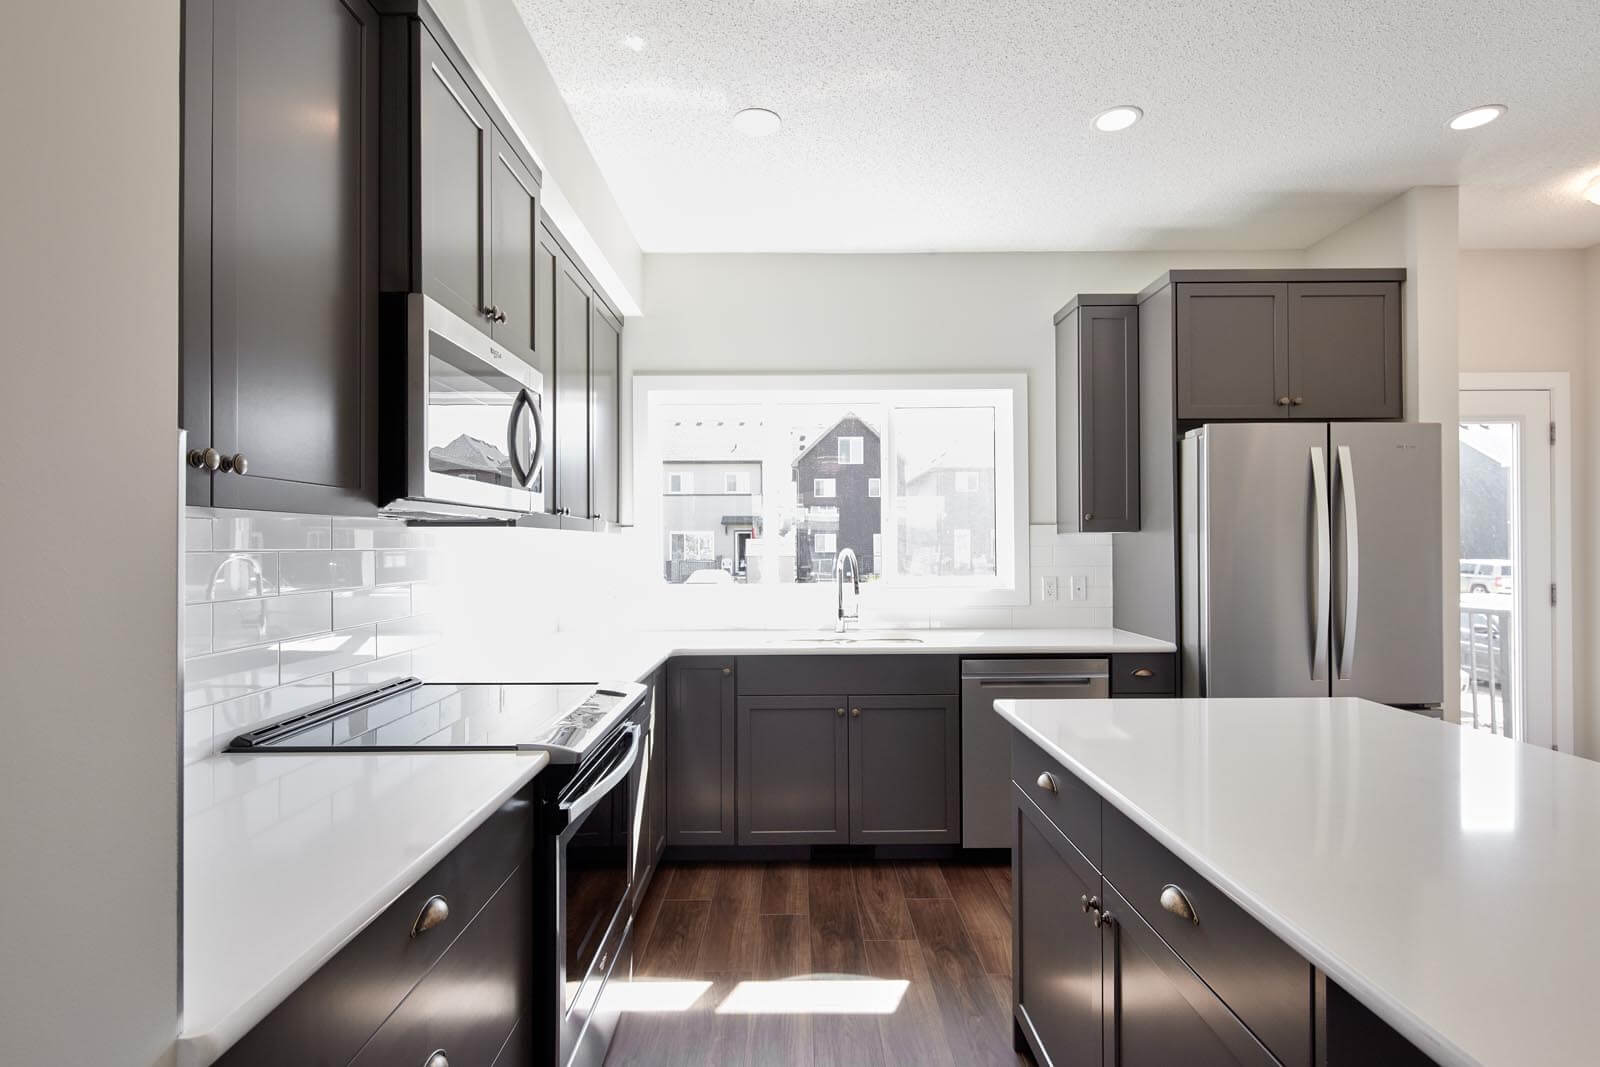 New Calgary Single Family Home Quick Possession Indigo 1 in Savanna, located at 9084 52 Street NE Built By Cardel Homes